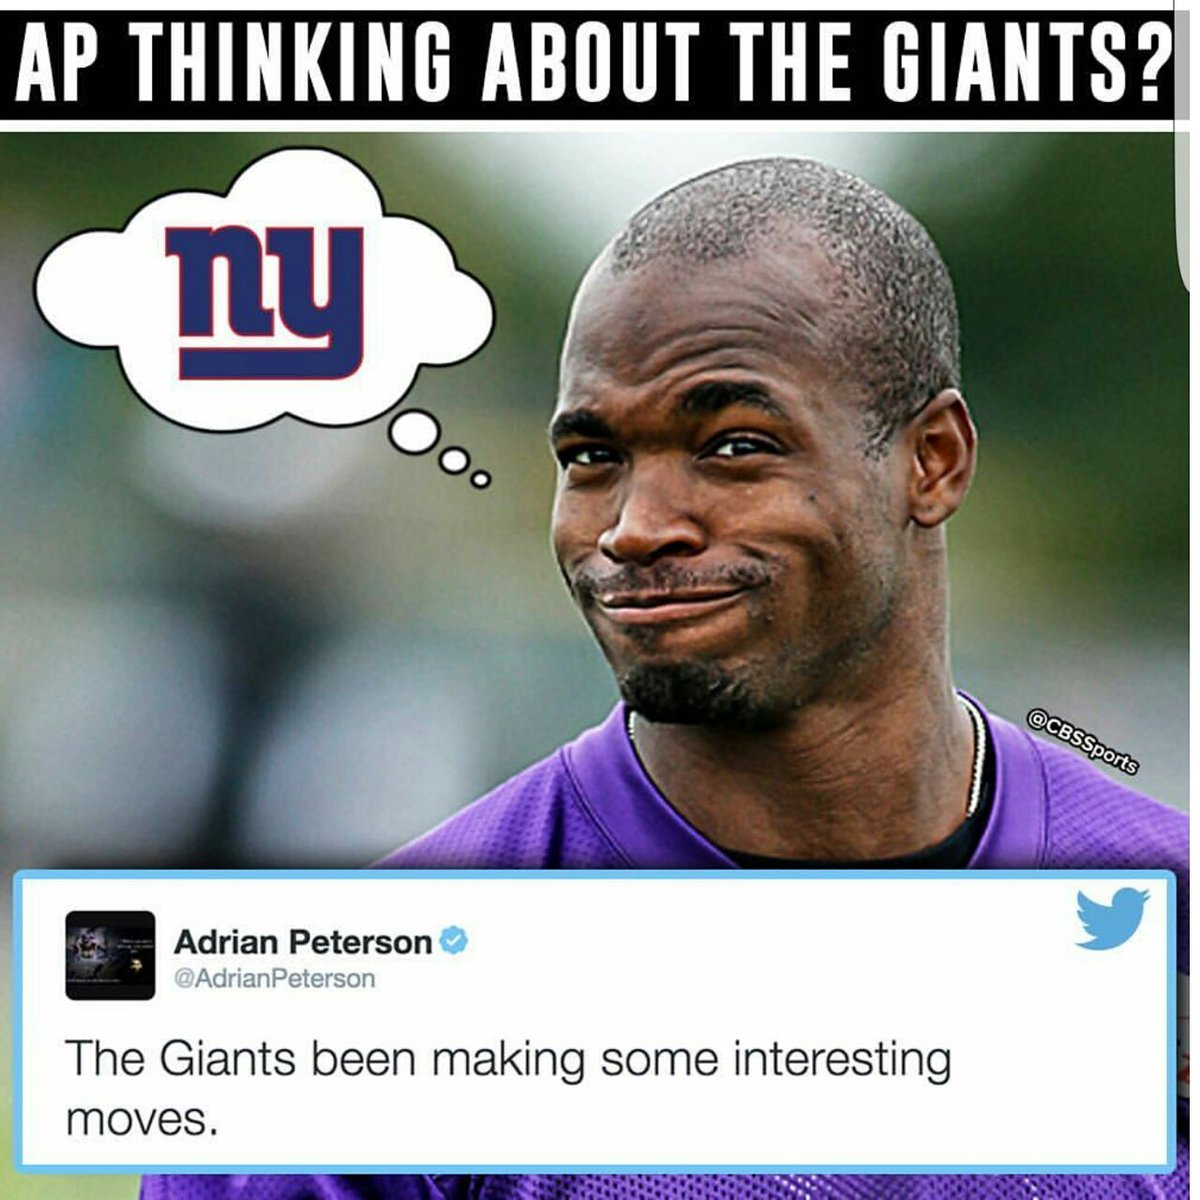 Call it leverage, call it a wish, call it whatever u want but AP clearly wants to play for Giants. #GIANTS #GiantsPride #AP rp @CBSSports<br>http://pic.twitter.com/GZFOjsJTBt